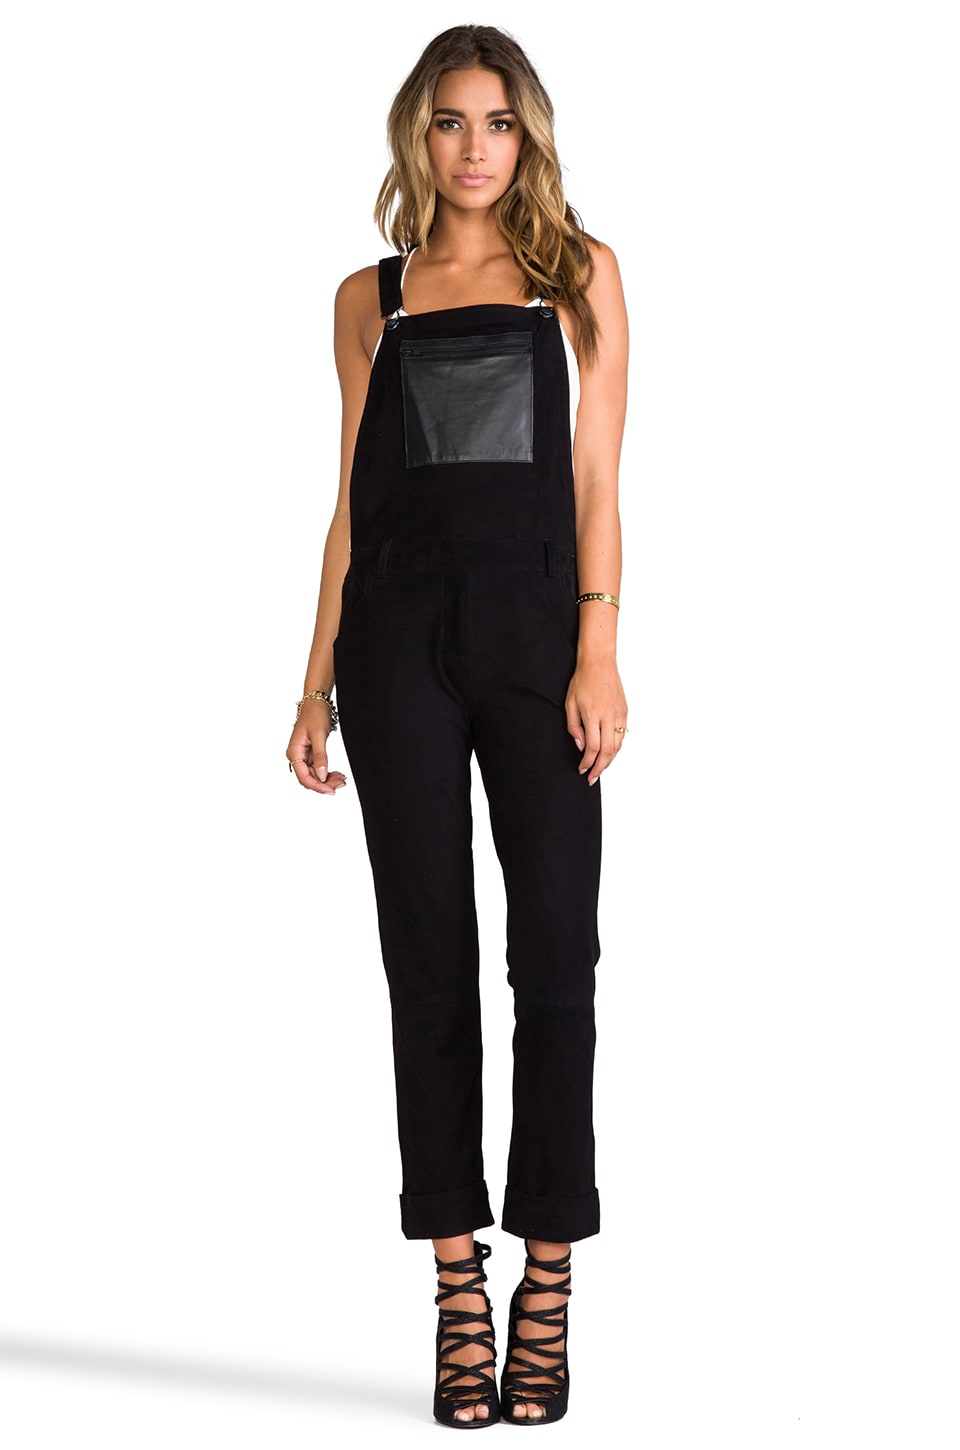 April, May Savour Suede Overalls in Black